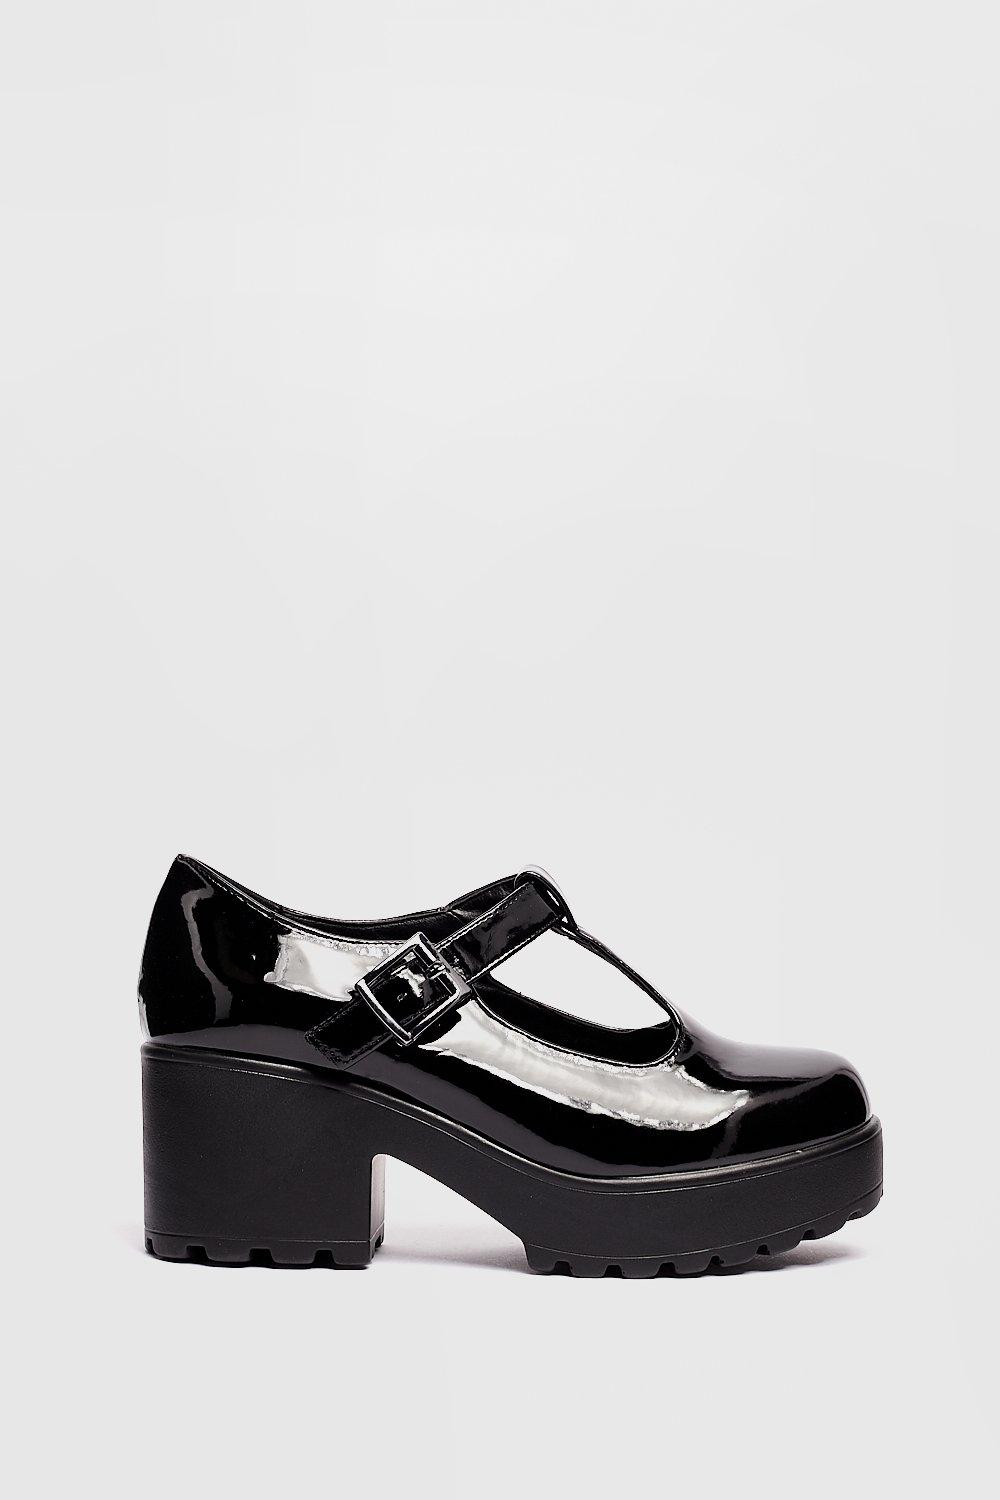 Patent leather Mary Janes shoes